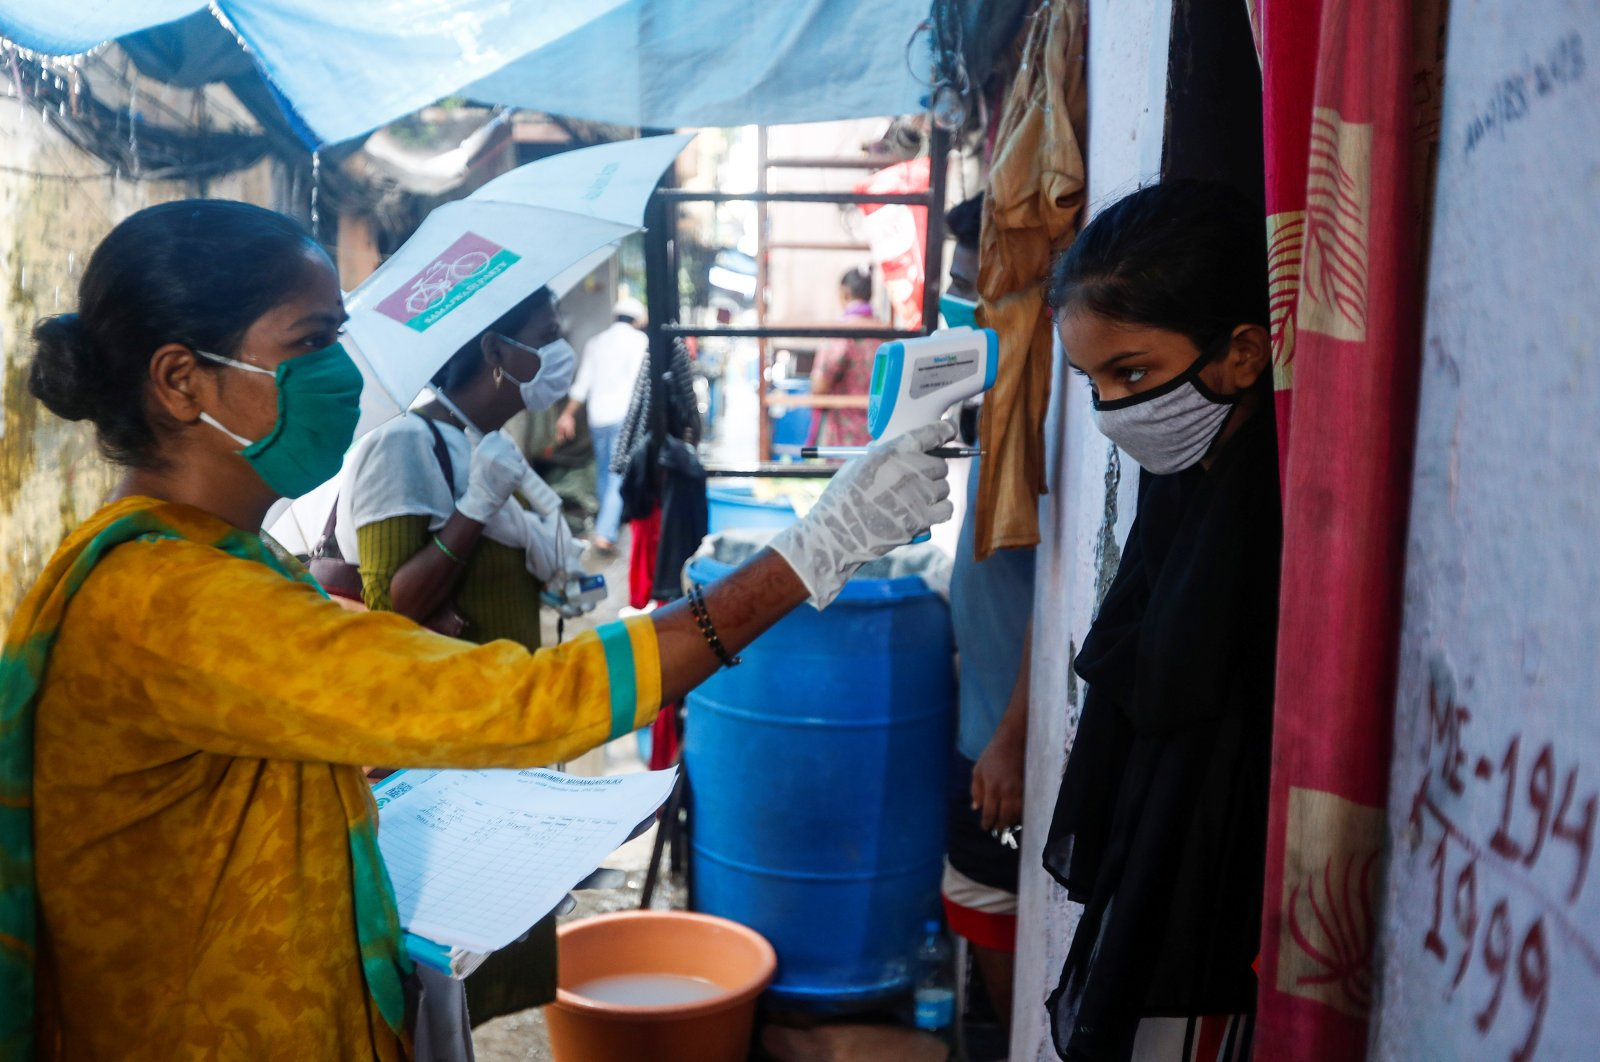 A community health volunteer checks the temperature of a girl during a checkup campaign at a slum in Mumbai, India, Aug. 17, 2020. (Reuters Photo)